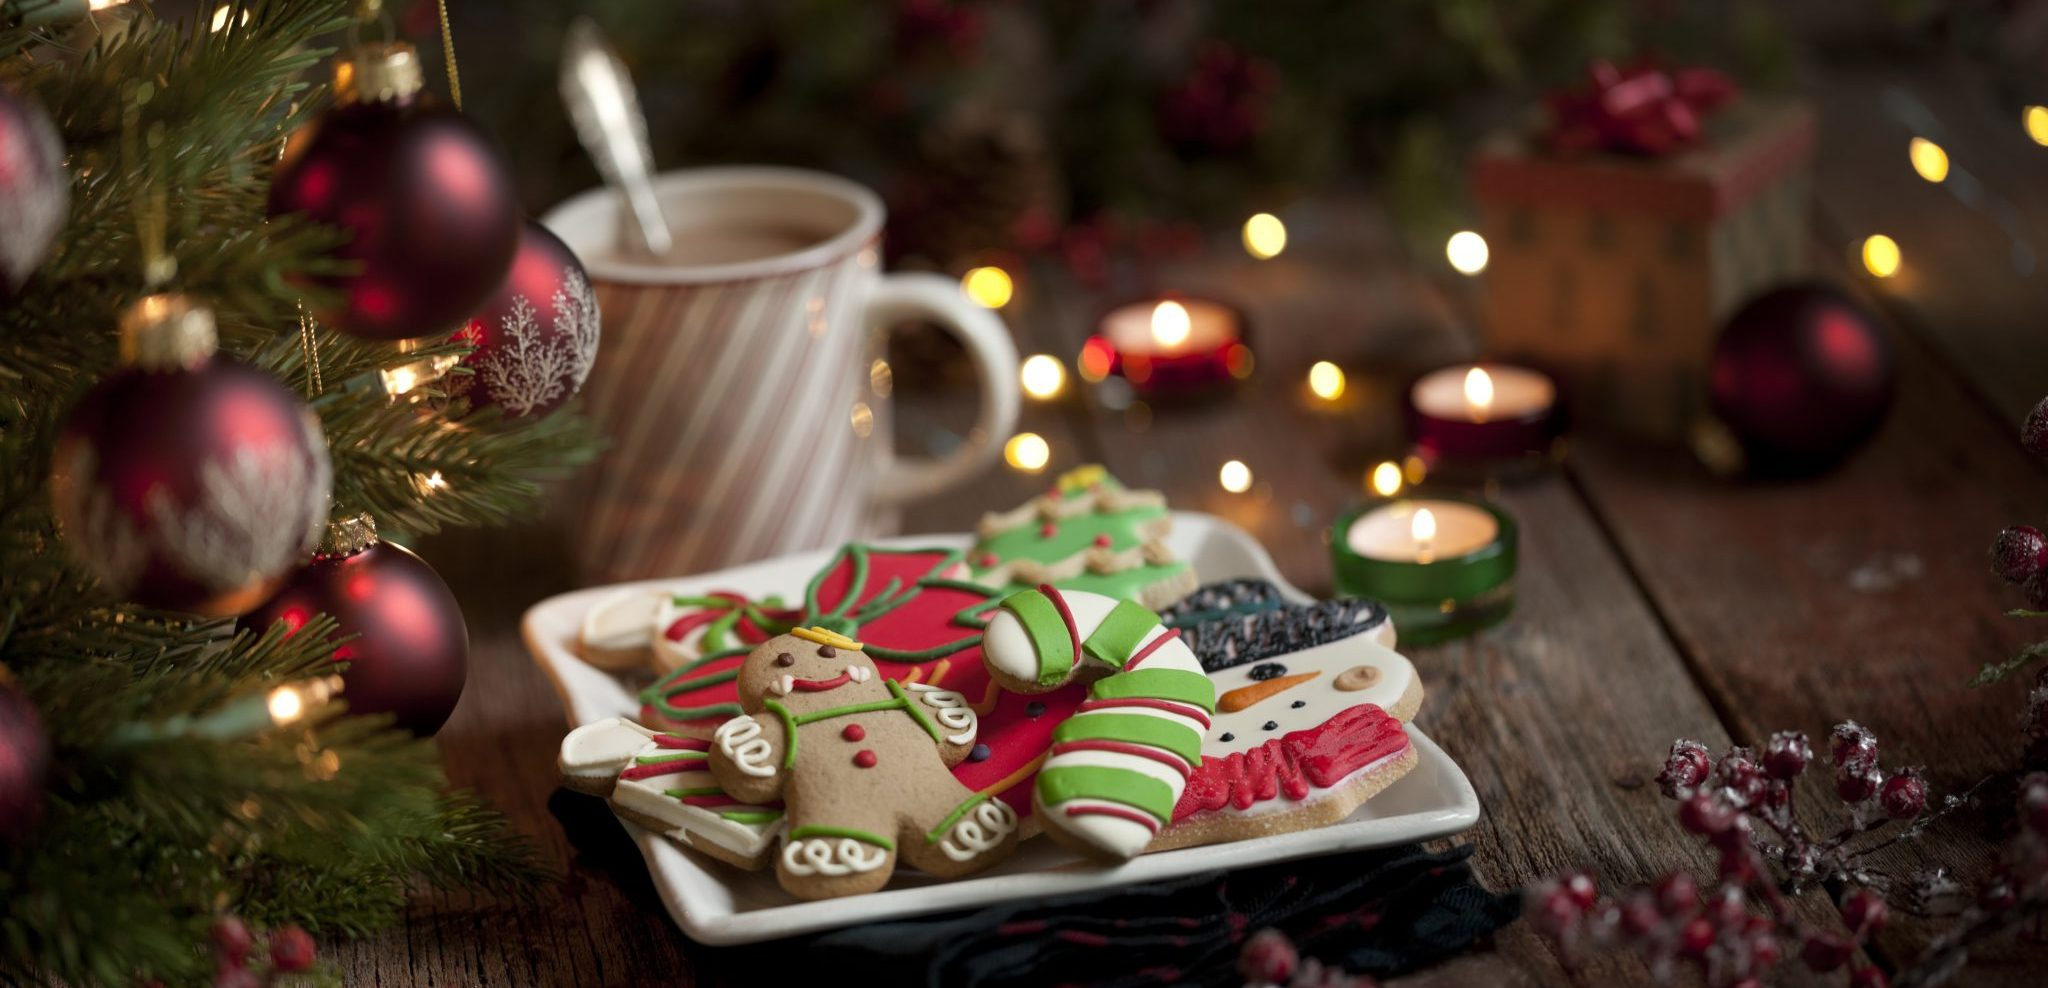 Christmas Traditions and Customs from Around the World